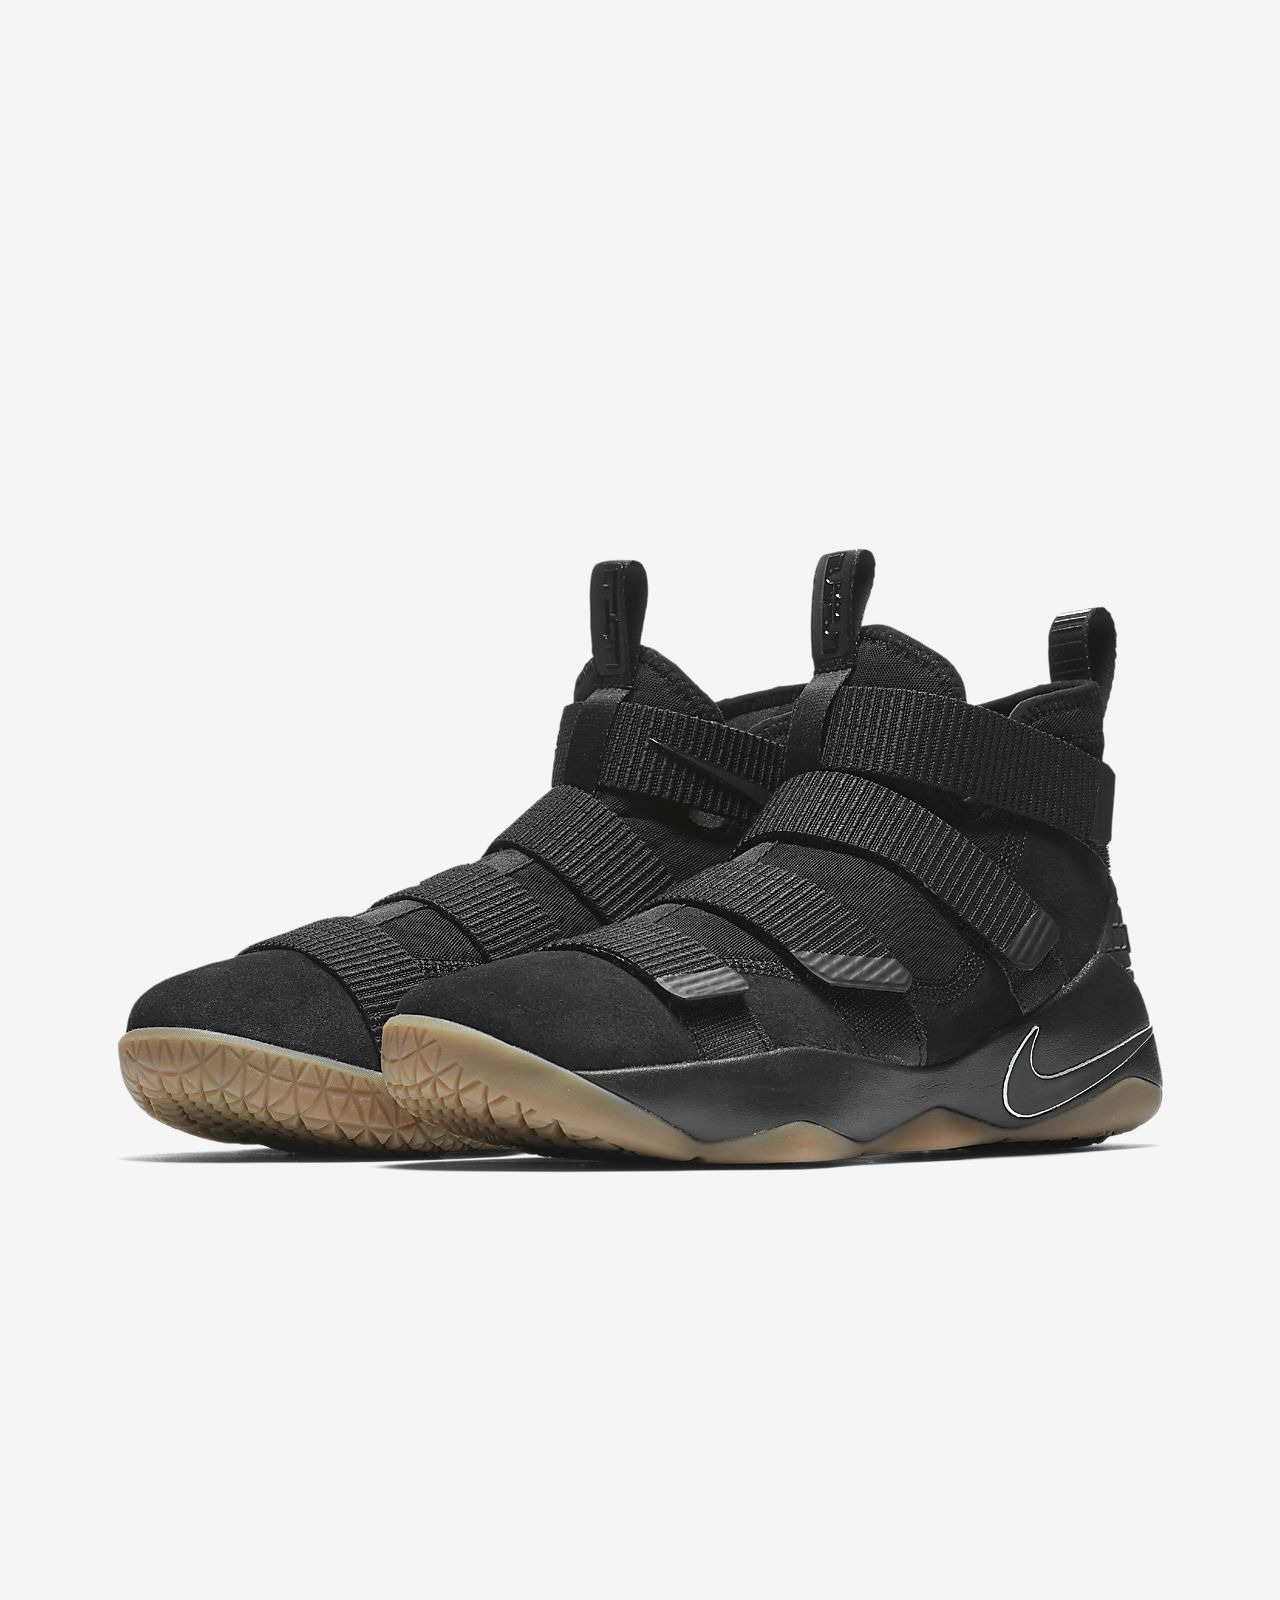 ... LeBron Soldier XI Basketball Shoe